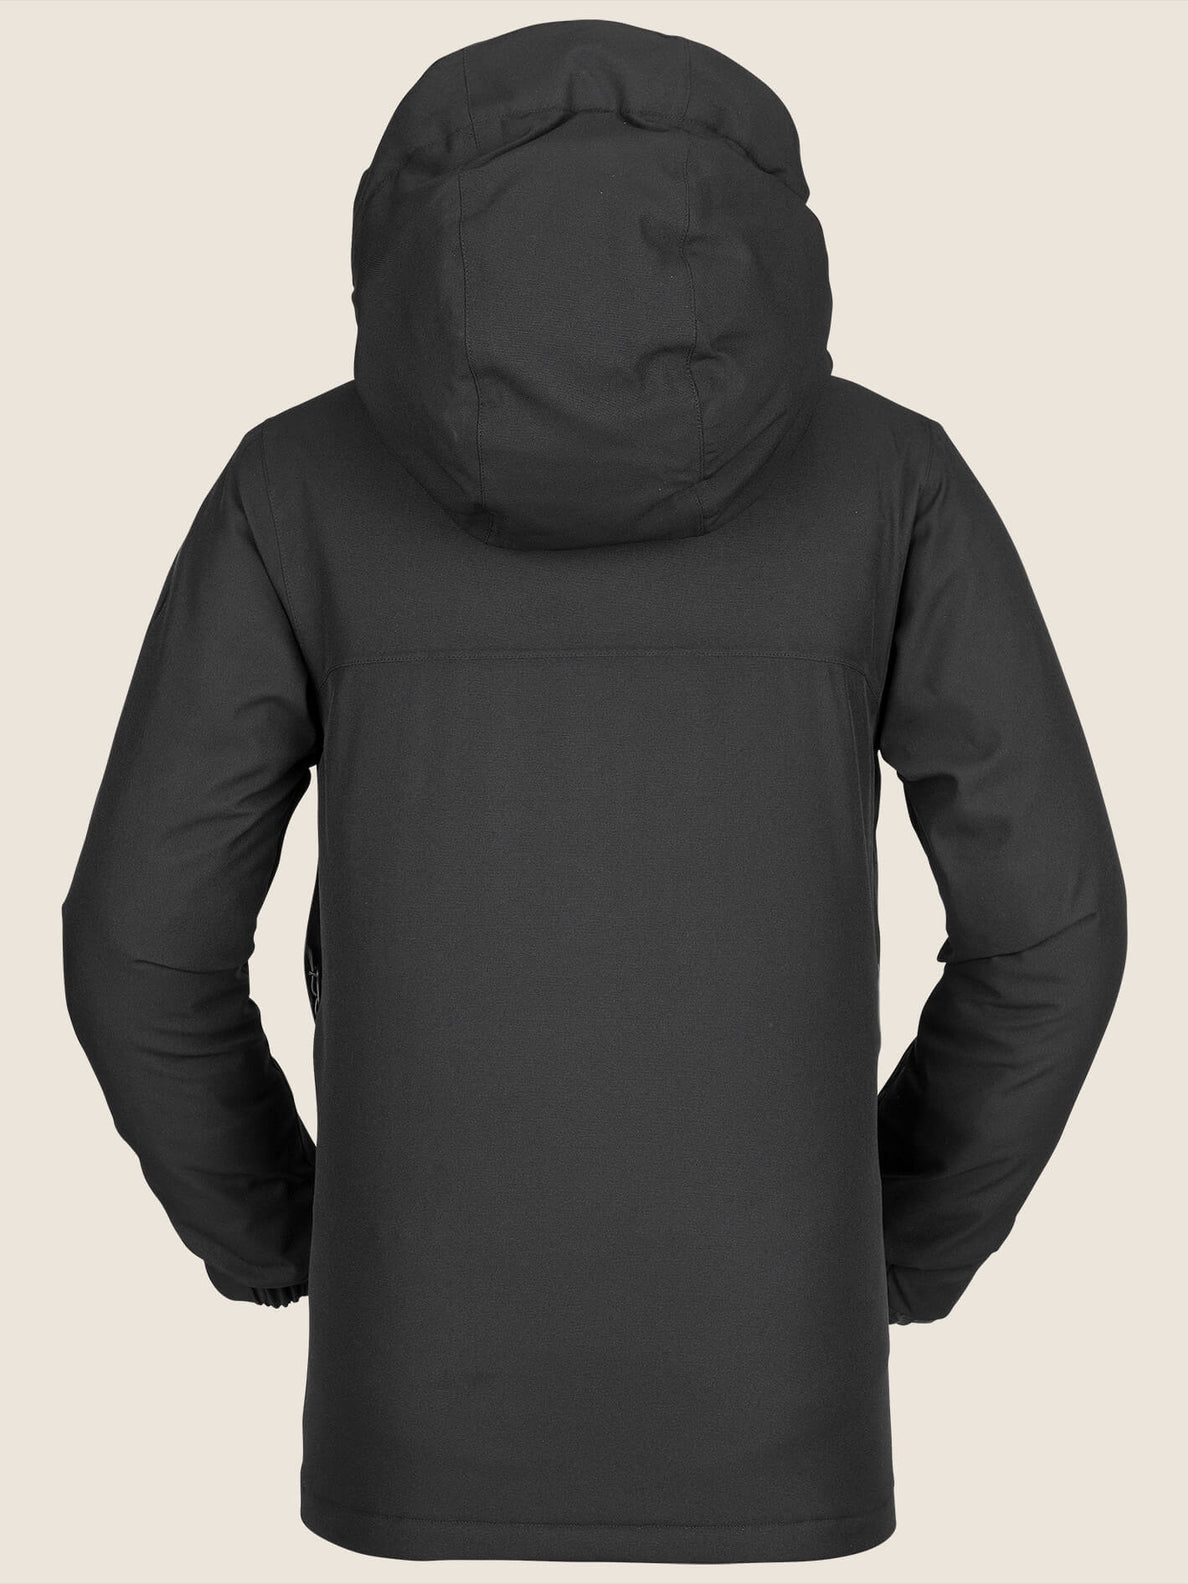 Holbeck Insulated Jacket In Black, Back View